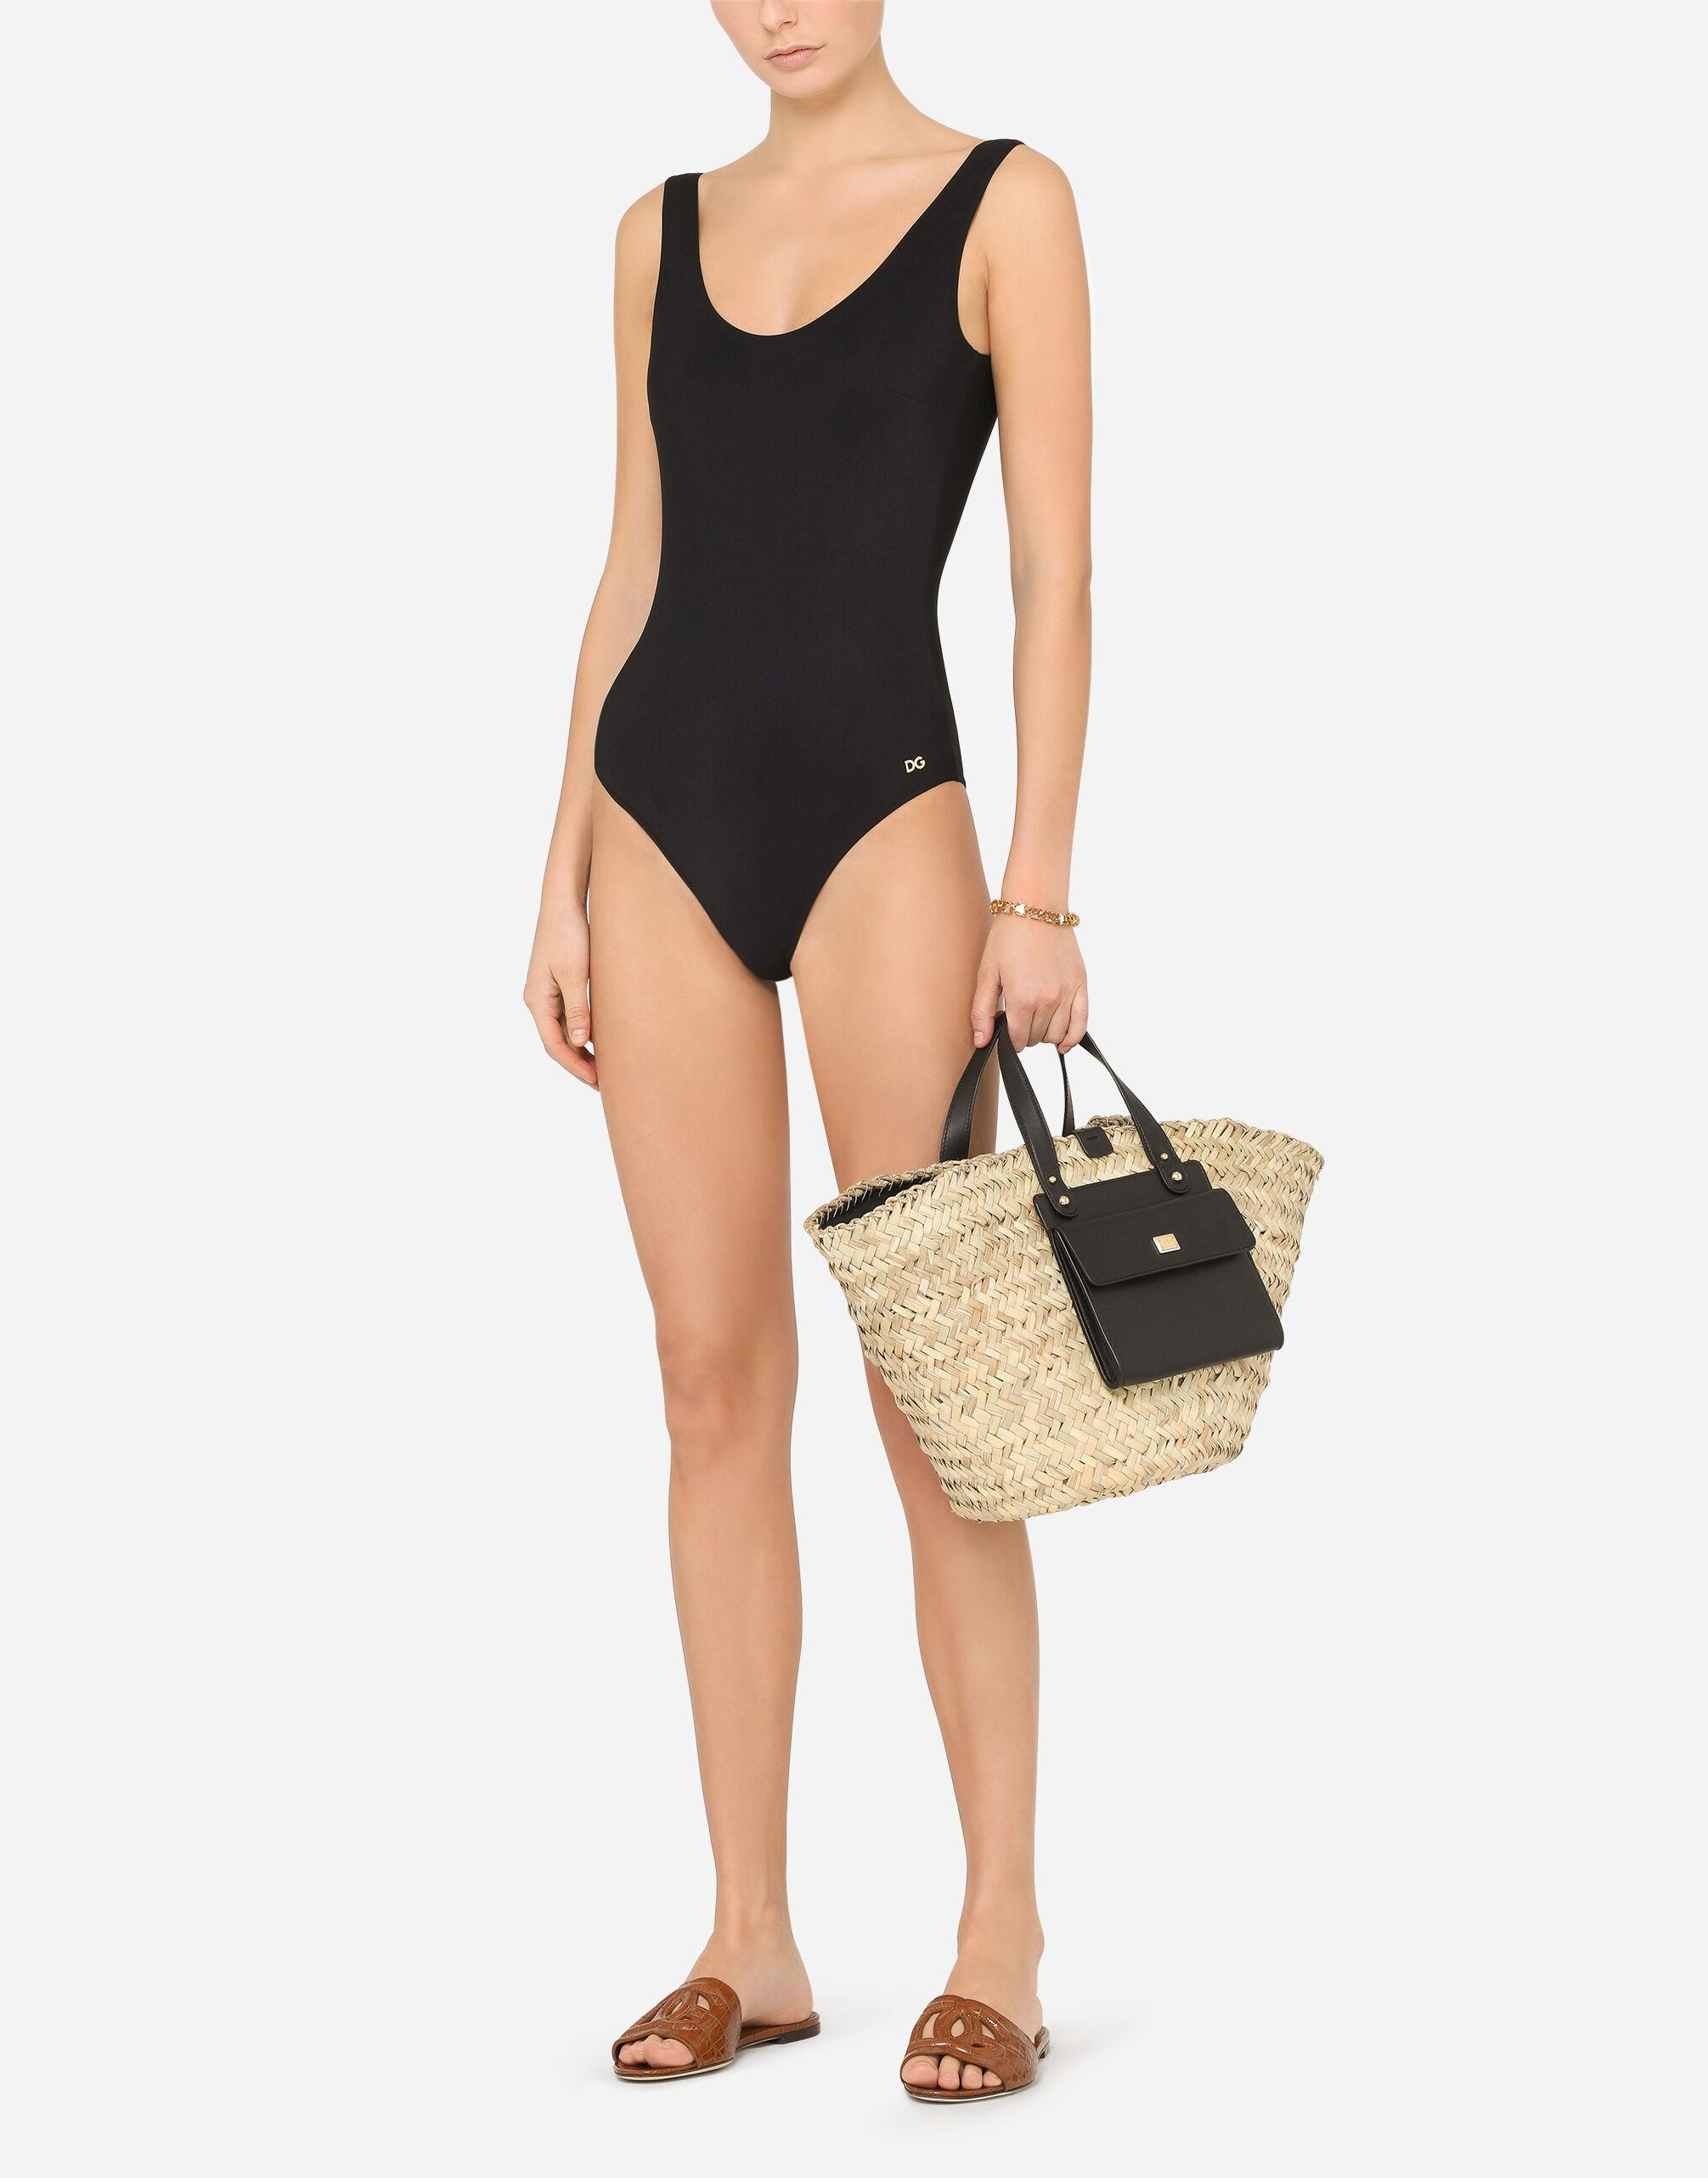 Racer-style one-piece swimsuit